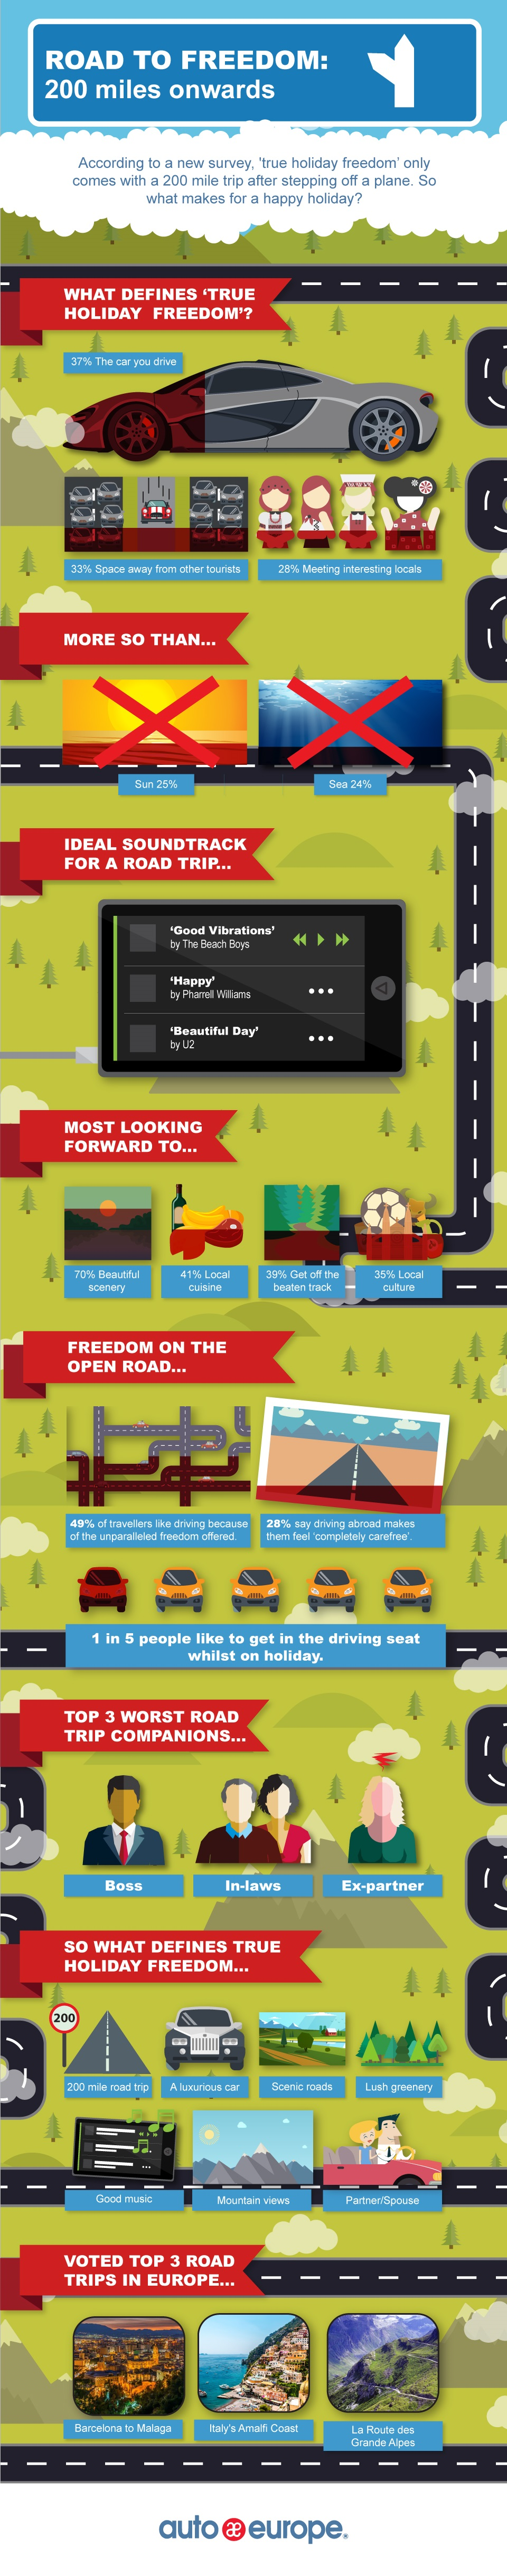 Auto Europe: True Holiday Freedom infographic